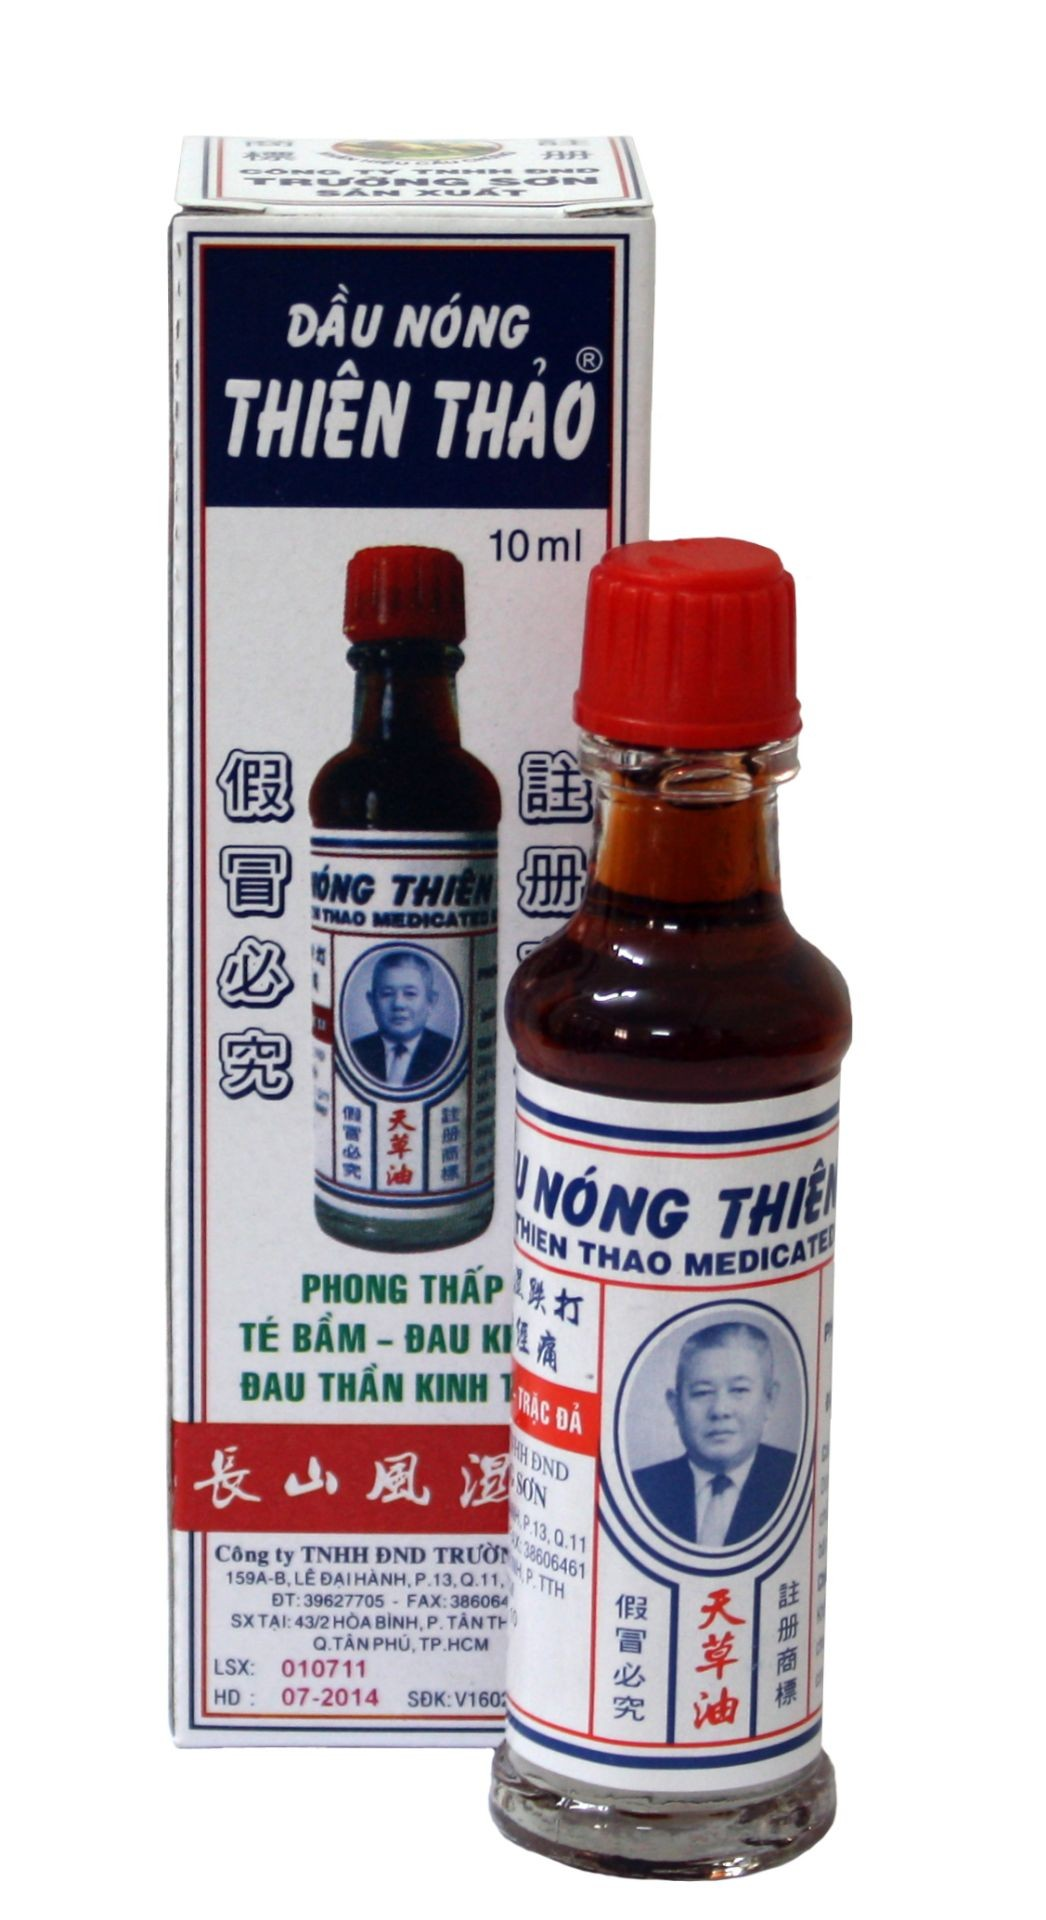 Thien Thao Dau Nong Oil 10ml